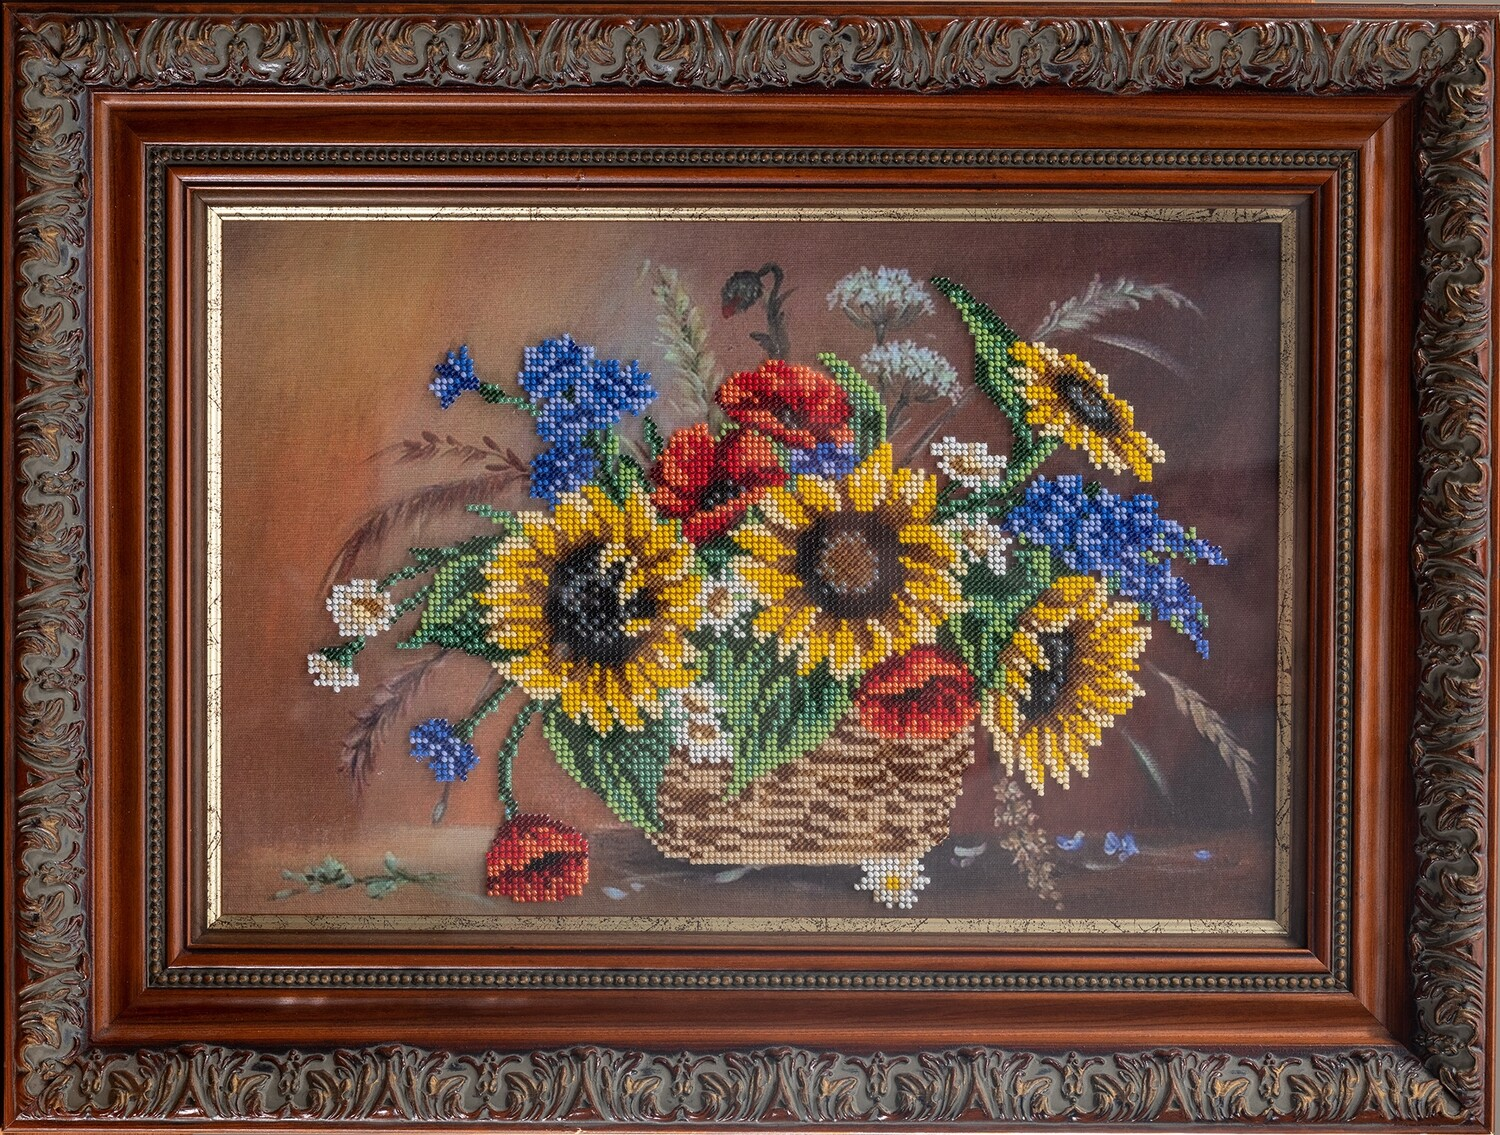 Sunflowers in the basket